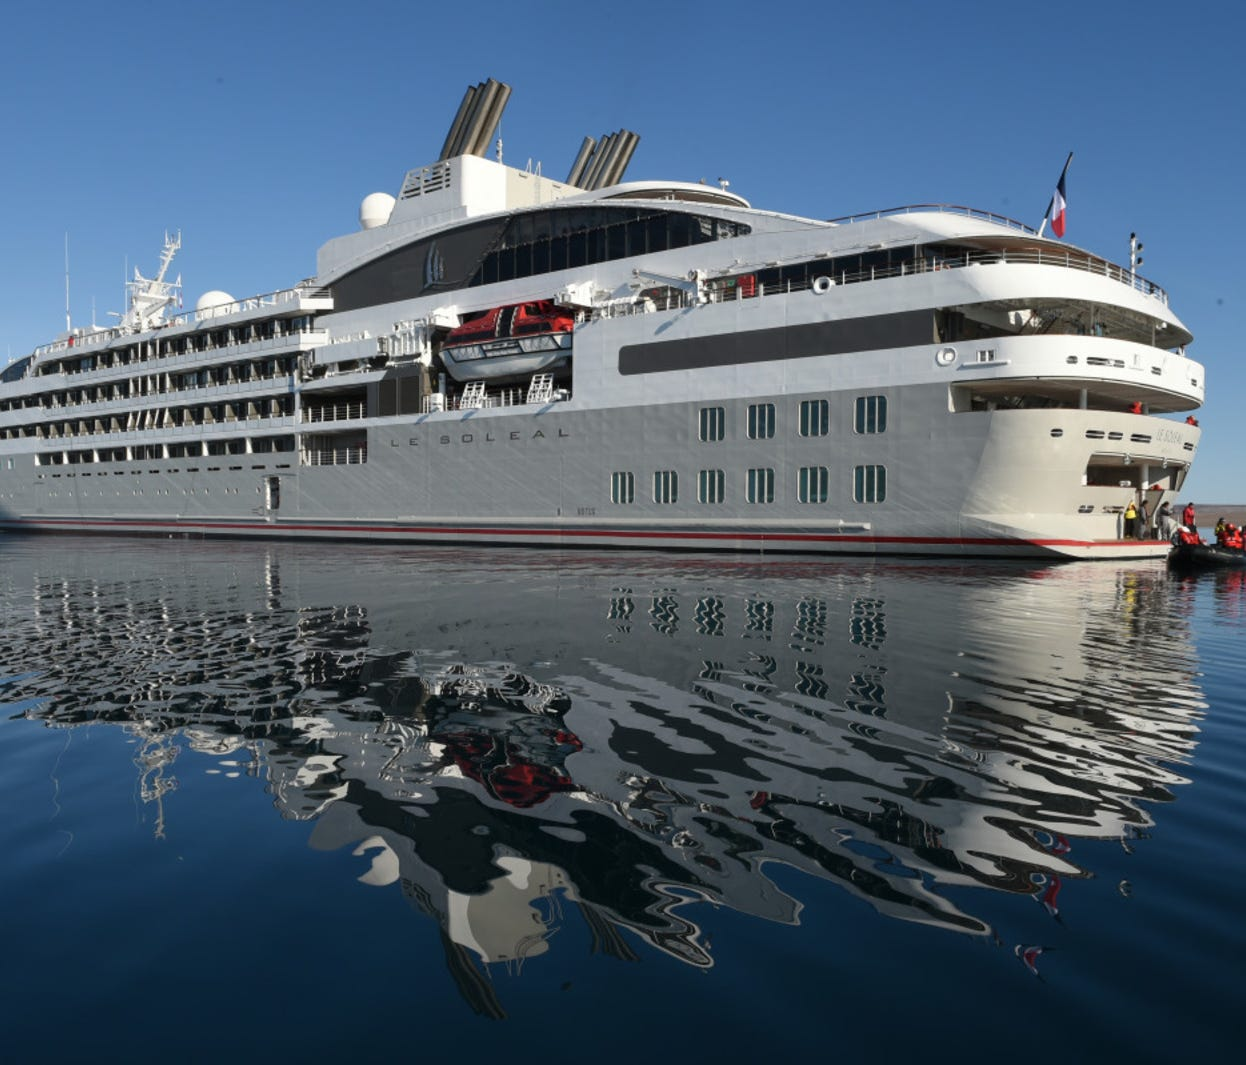 France-based Ponant's 264-passenger Le Soleal was christened in 2013. Six decks high and 466 feet in length, it is one of four nearly identical vessels at the line that debuted between 2010 and 2015.